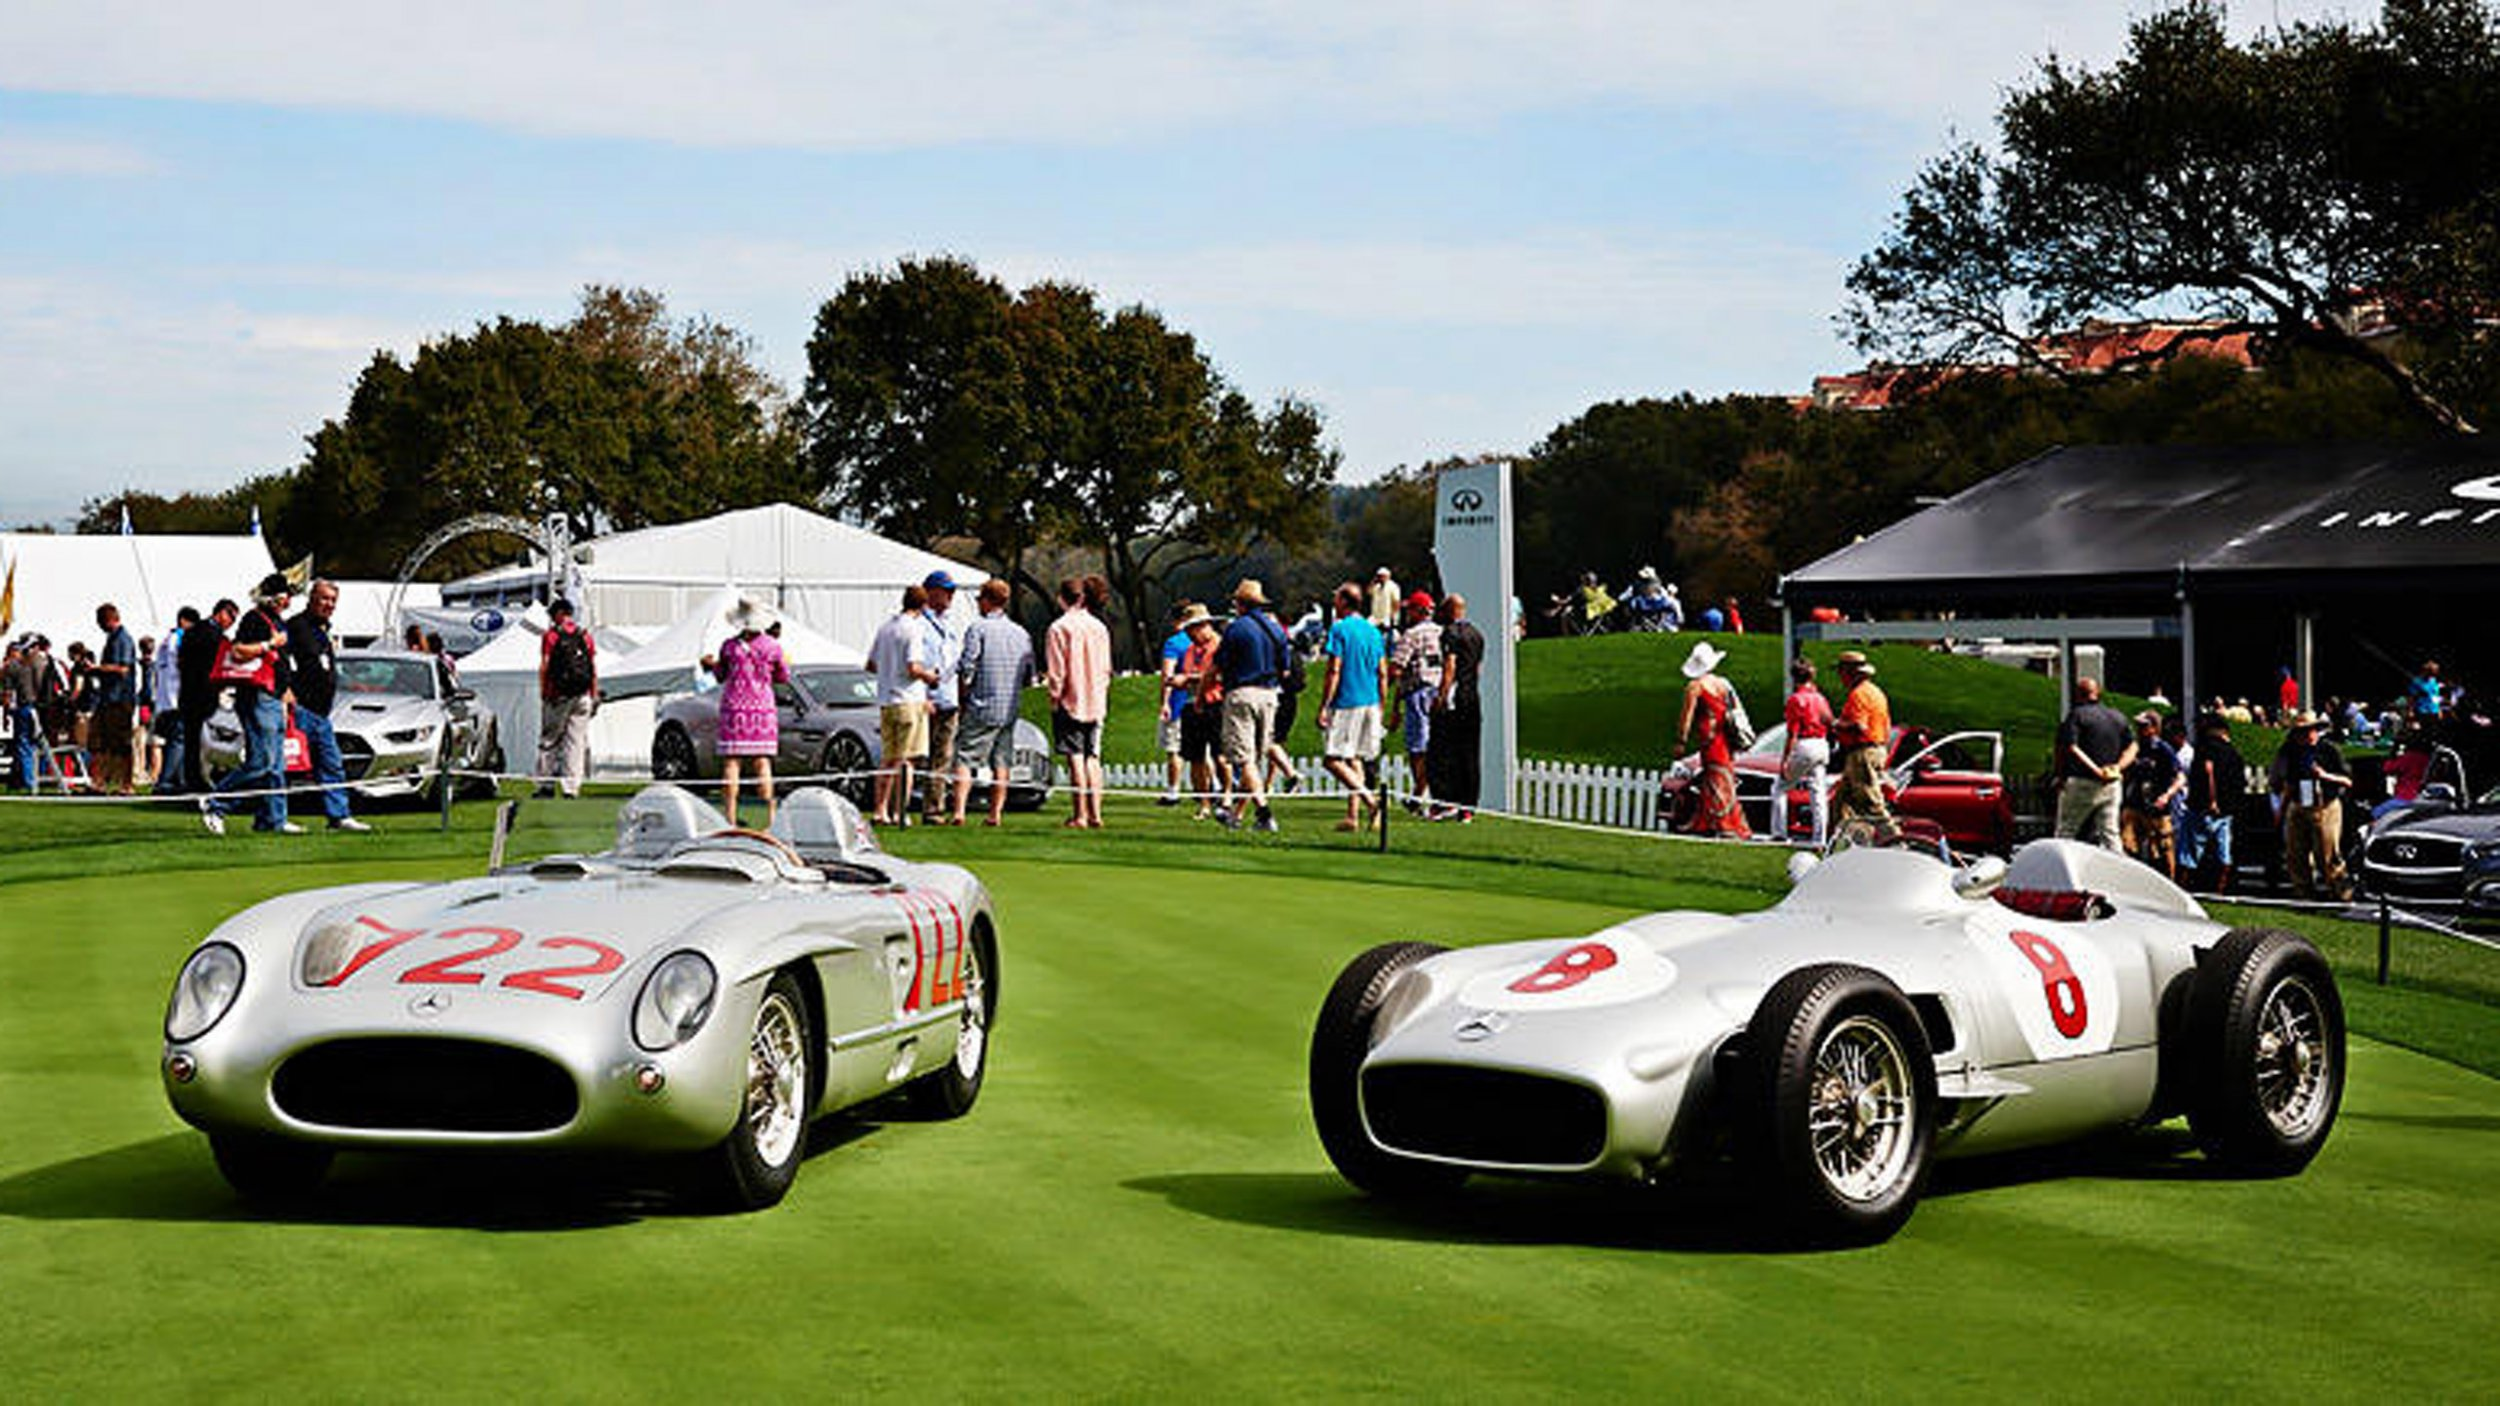 /files/HQ-Events/Classic/Oldtimer%20Events/03-Mercedes-Benz-Amelia-Island-Concours-d%E2%80%99Elegance-2015-2560x1440.jpg